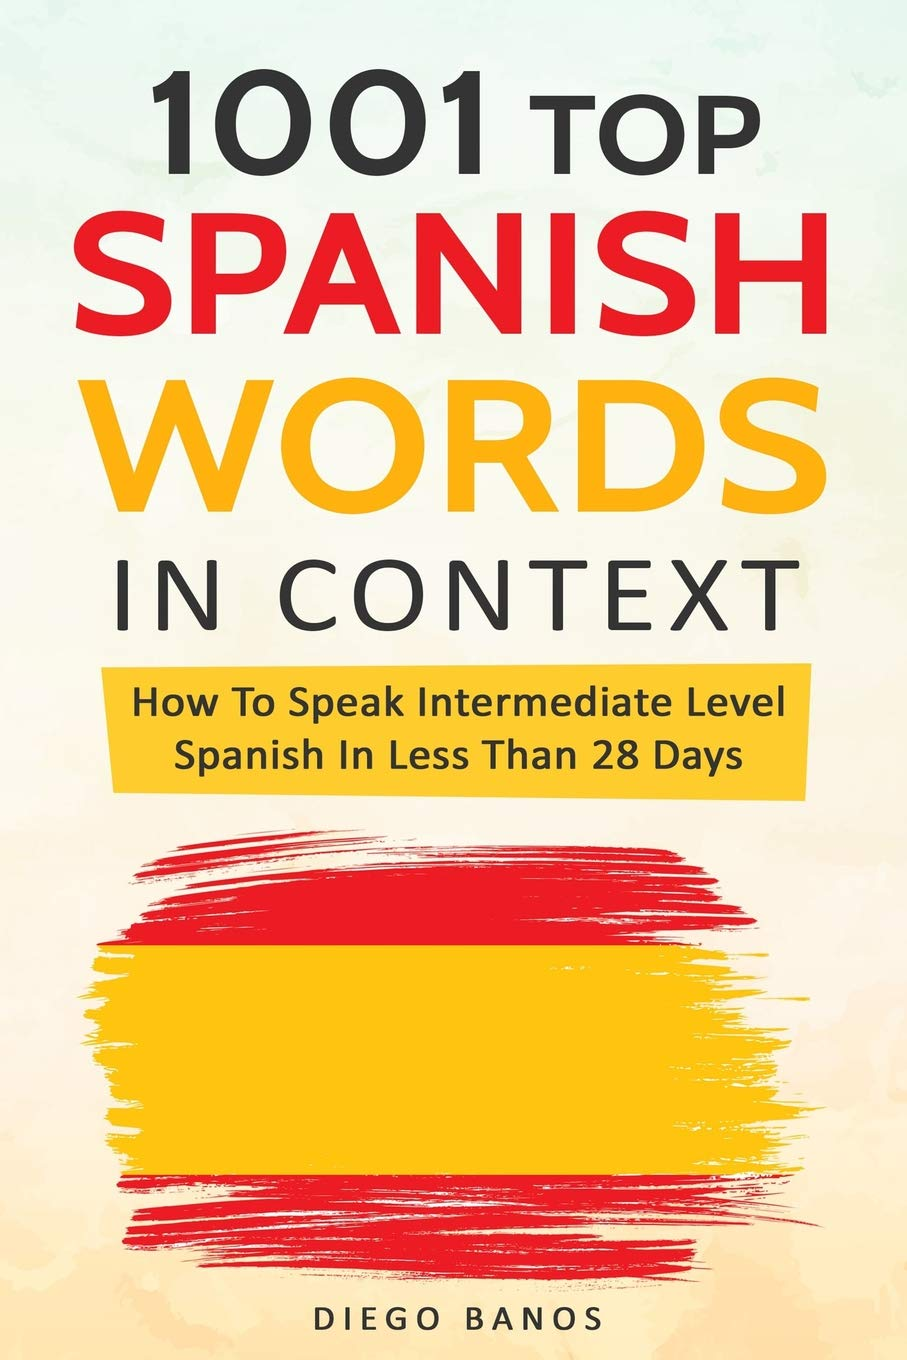 1001 Top Spanish Words Context product image